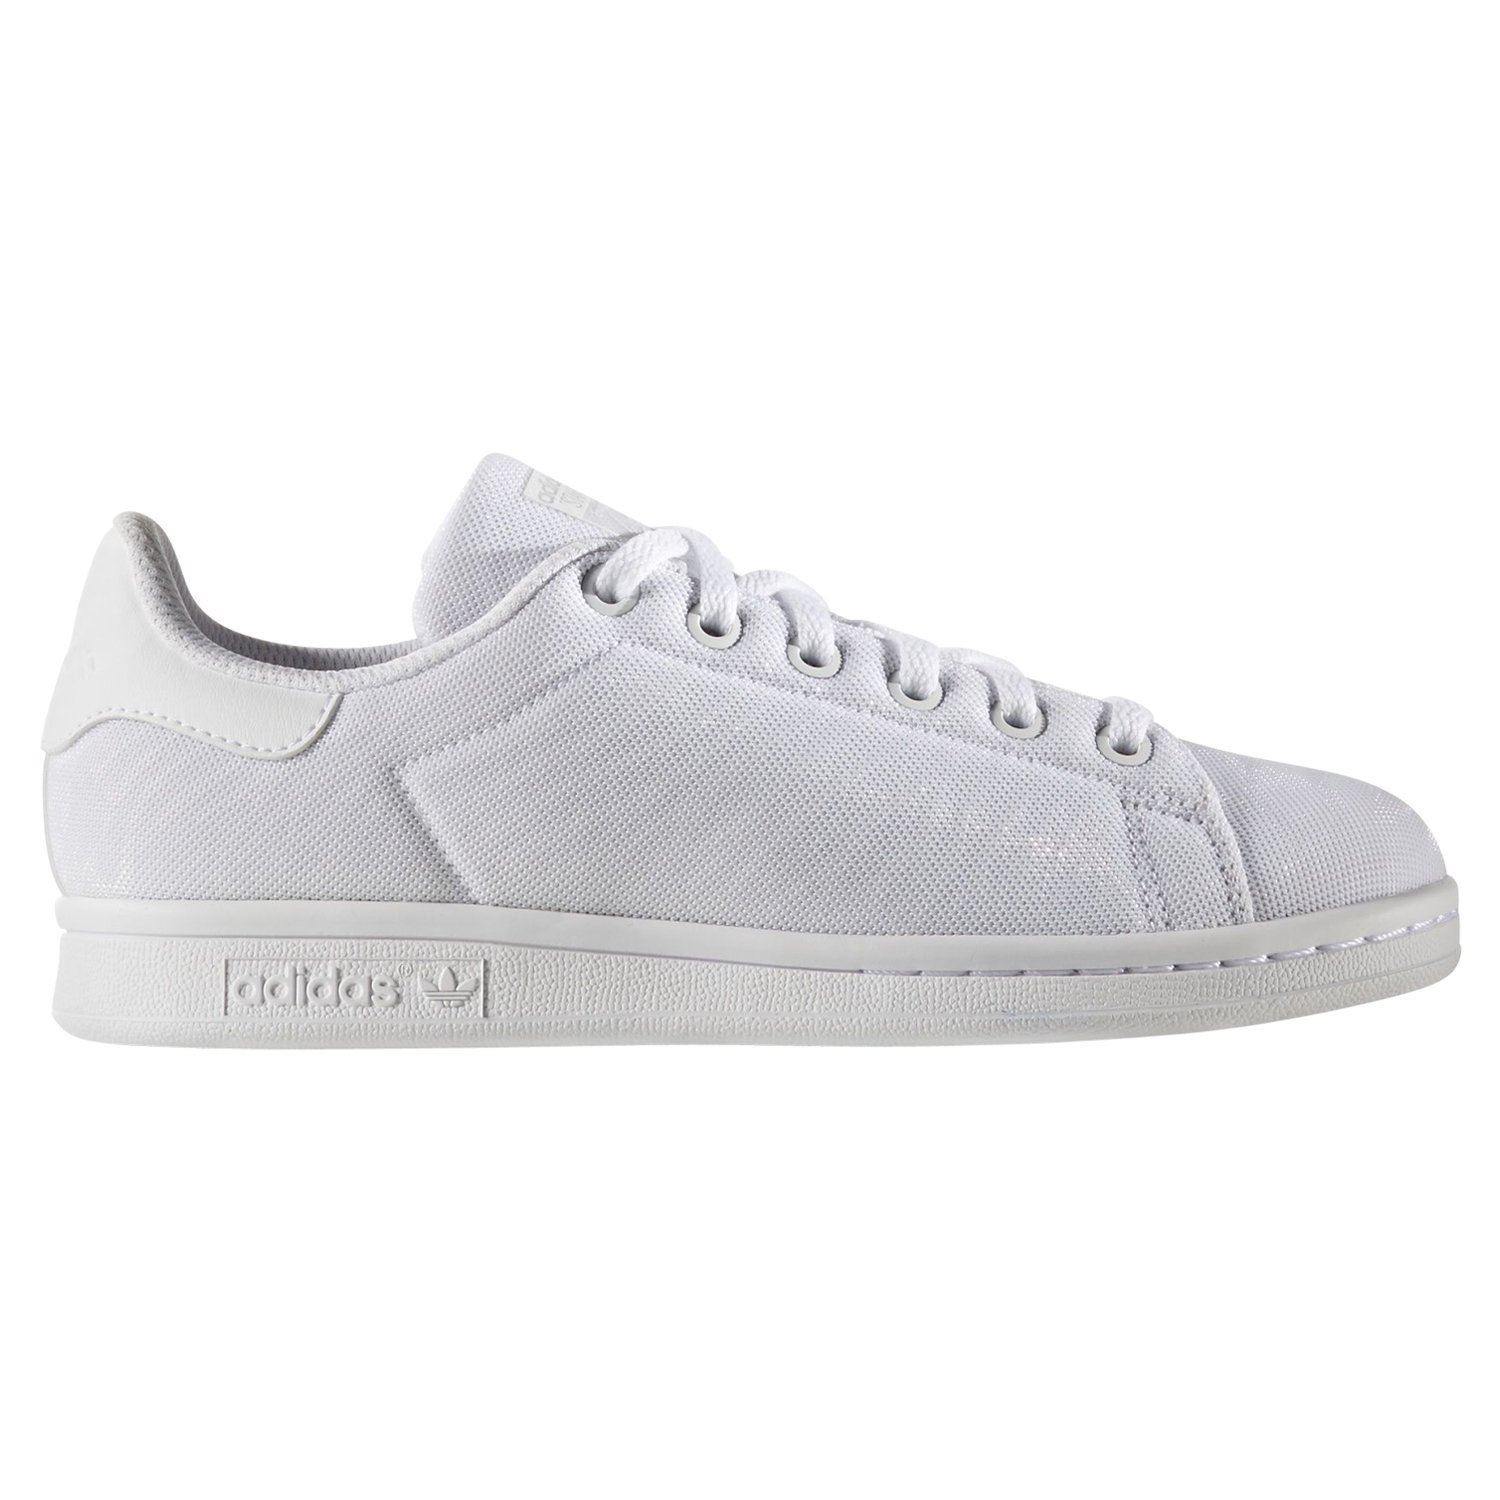 Details about adidas ORIGINALS STAN SMITH JUNIOR TRAINERS WHITE KIDS BOYS  GIRLS WOMEN S NEW b65f95b726